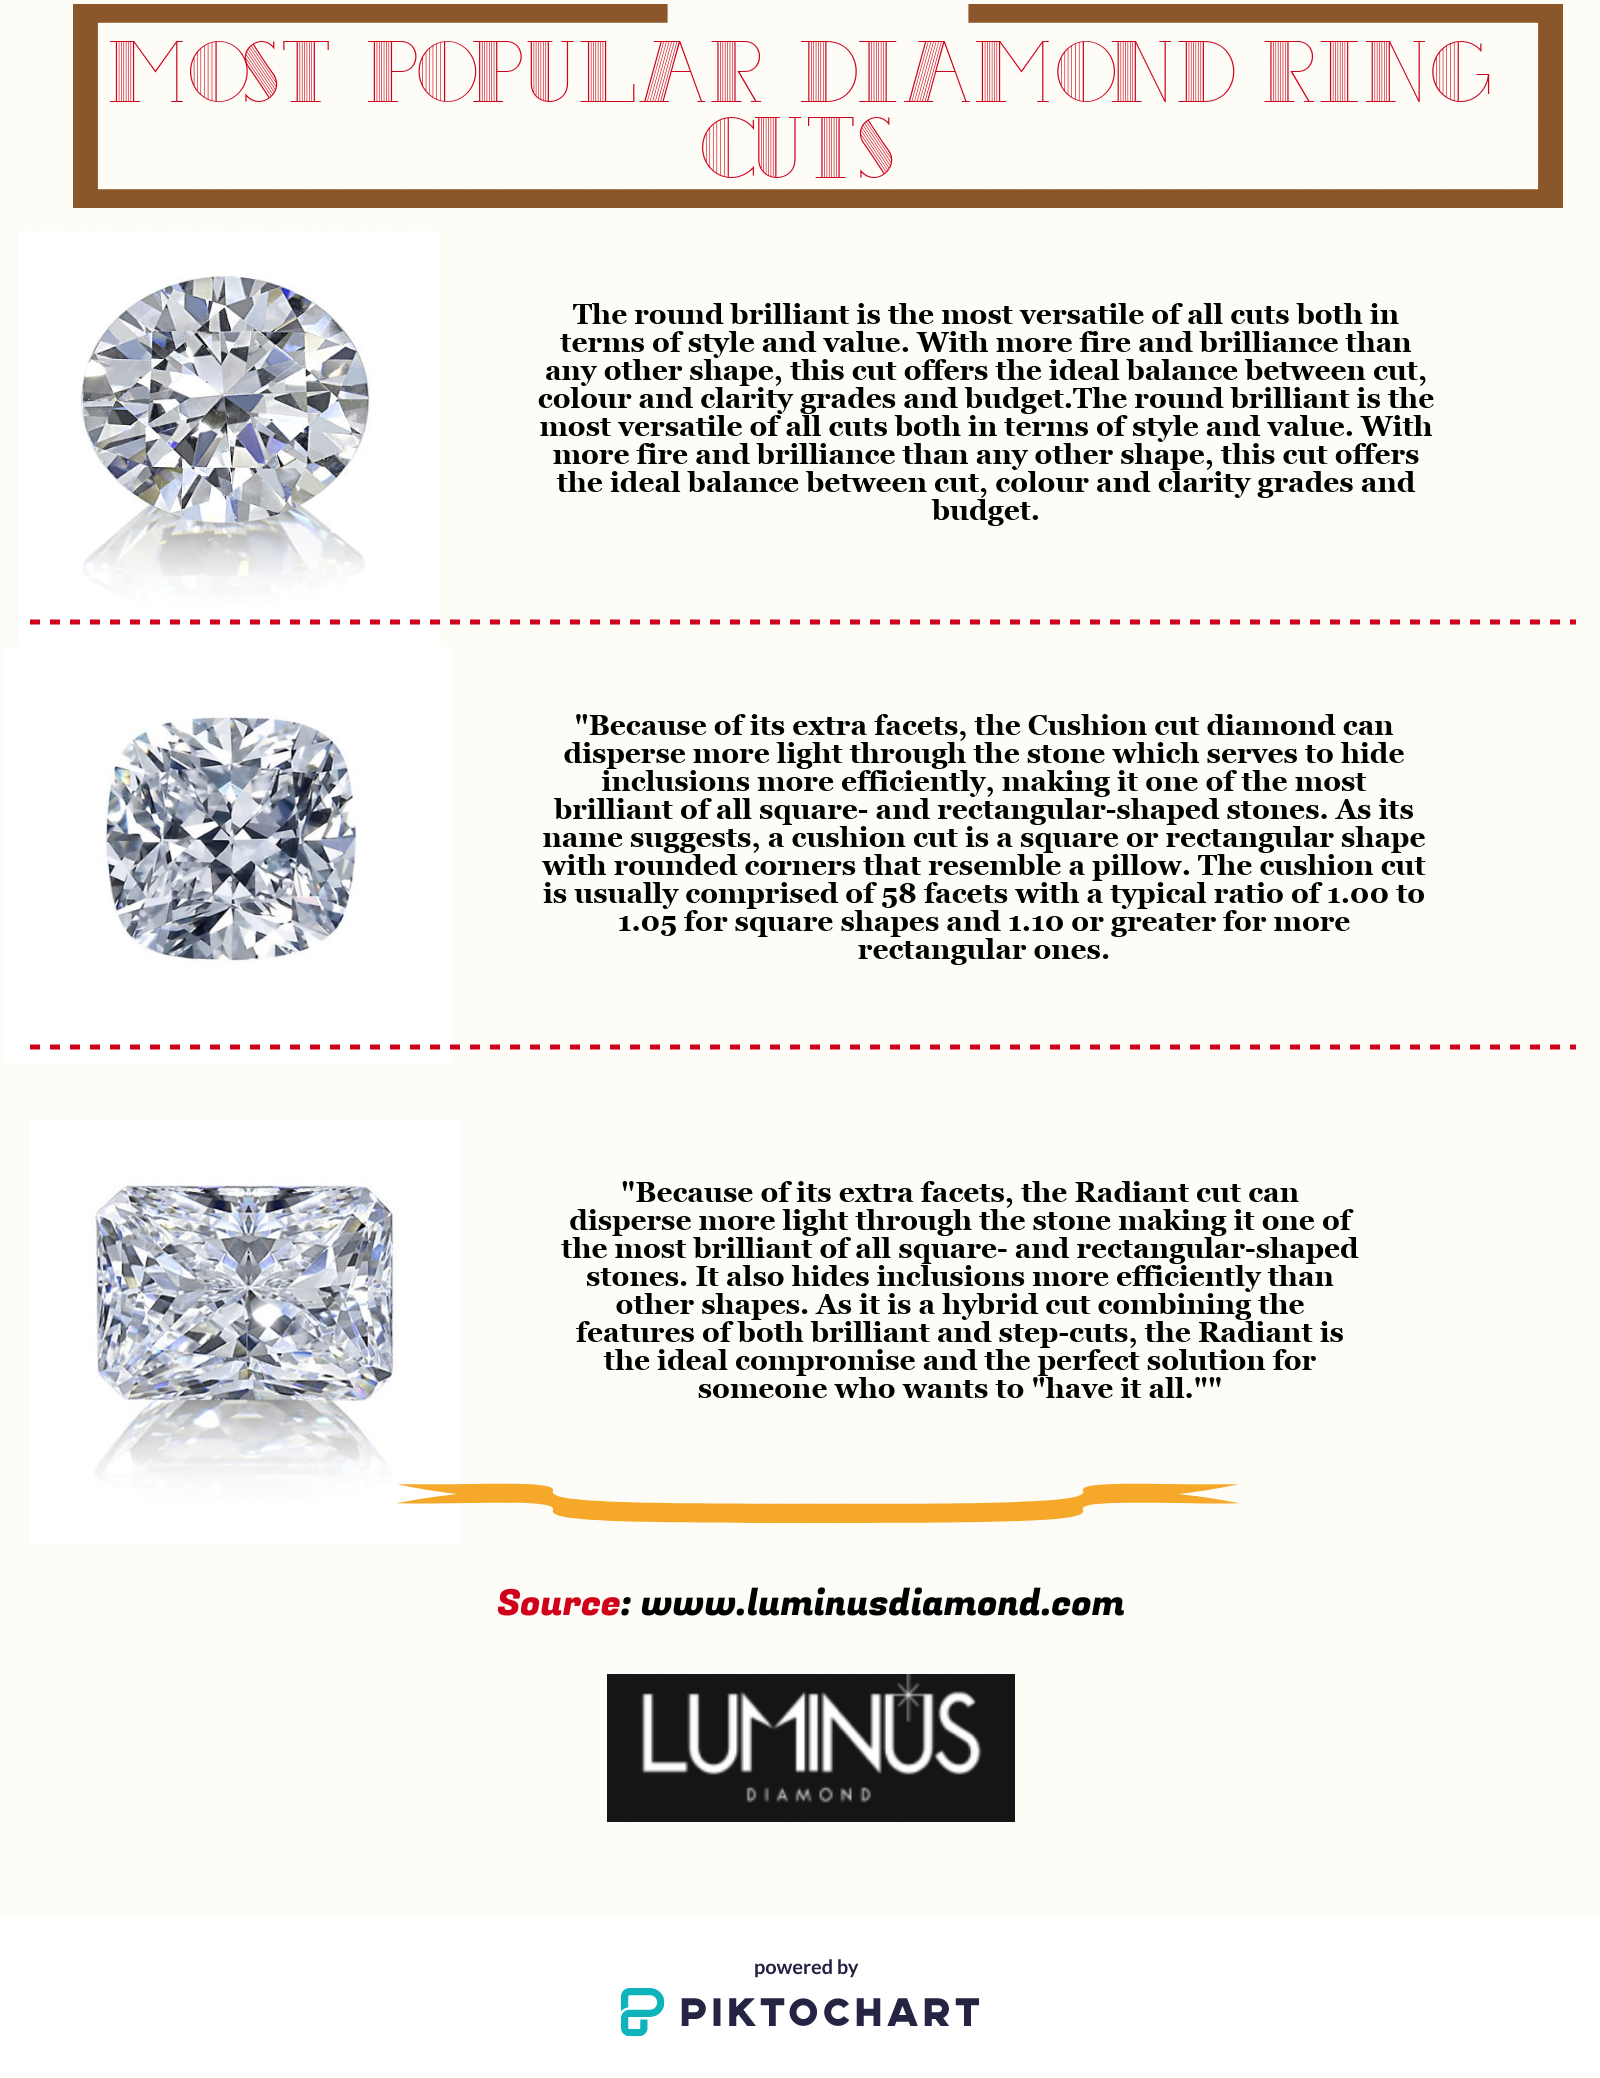 Check out most most popular diamond ring cuts presented by luminus